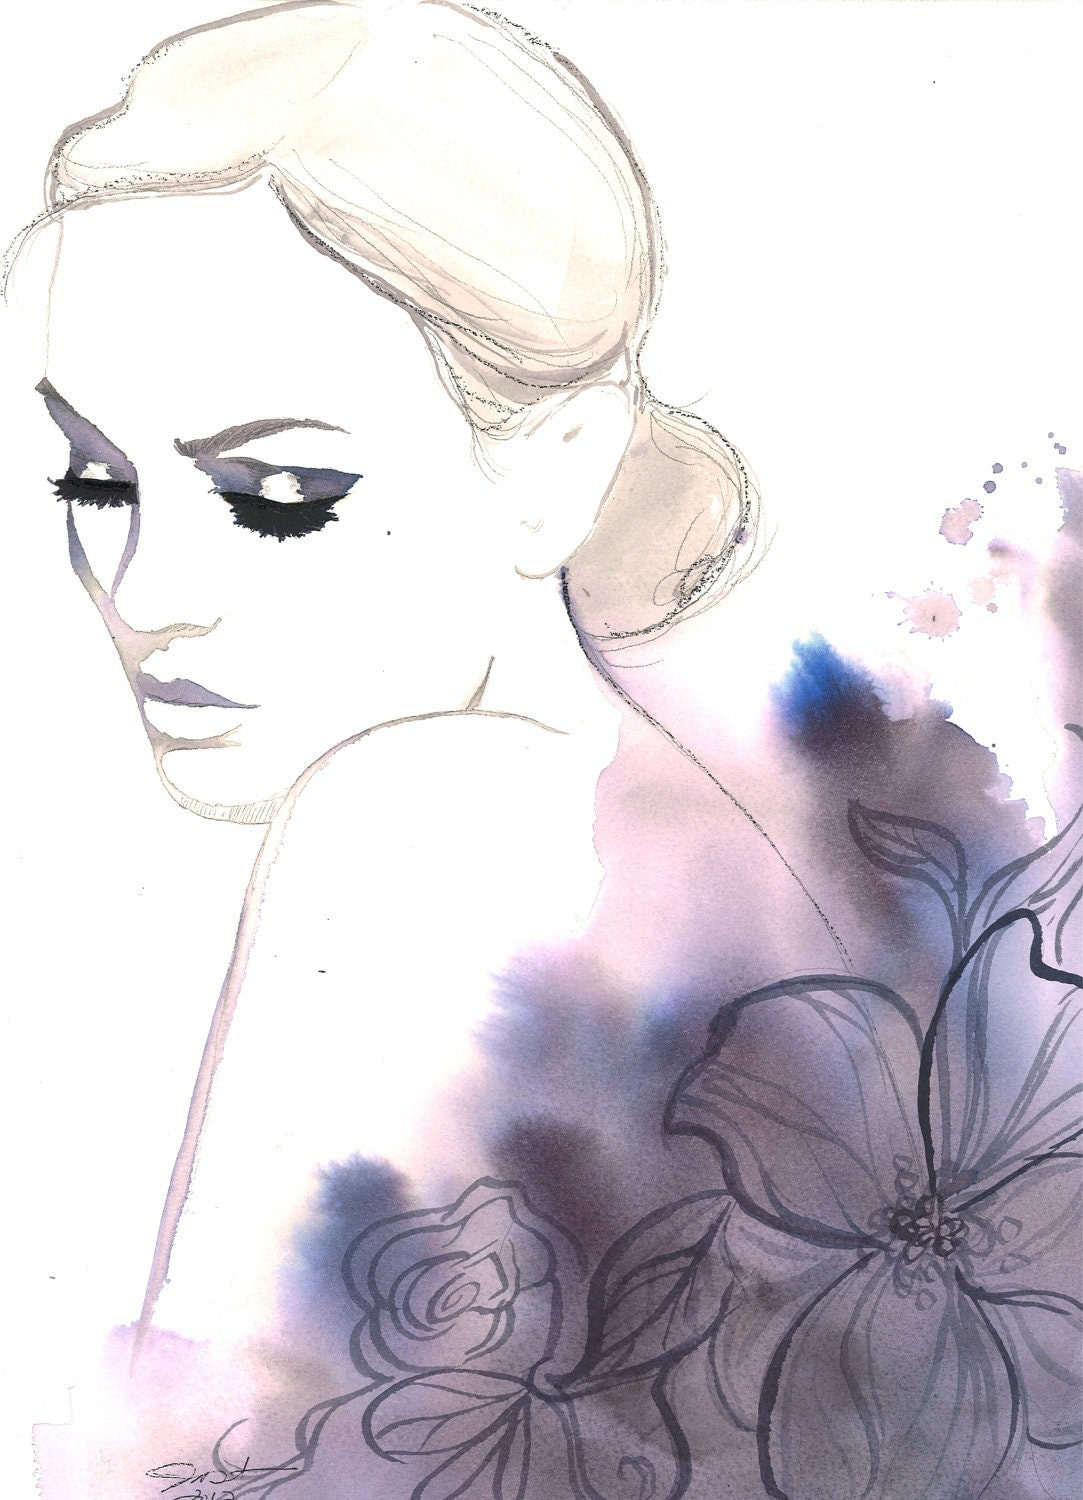 Print from original watercolor charcoal and pen fashion